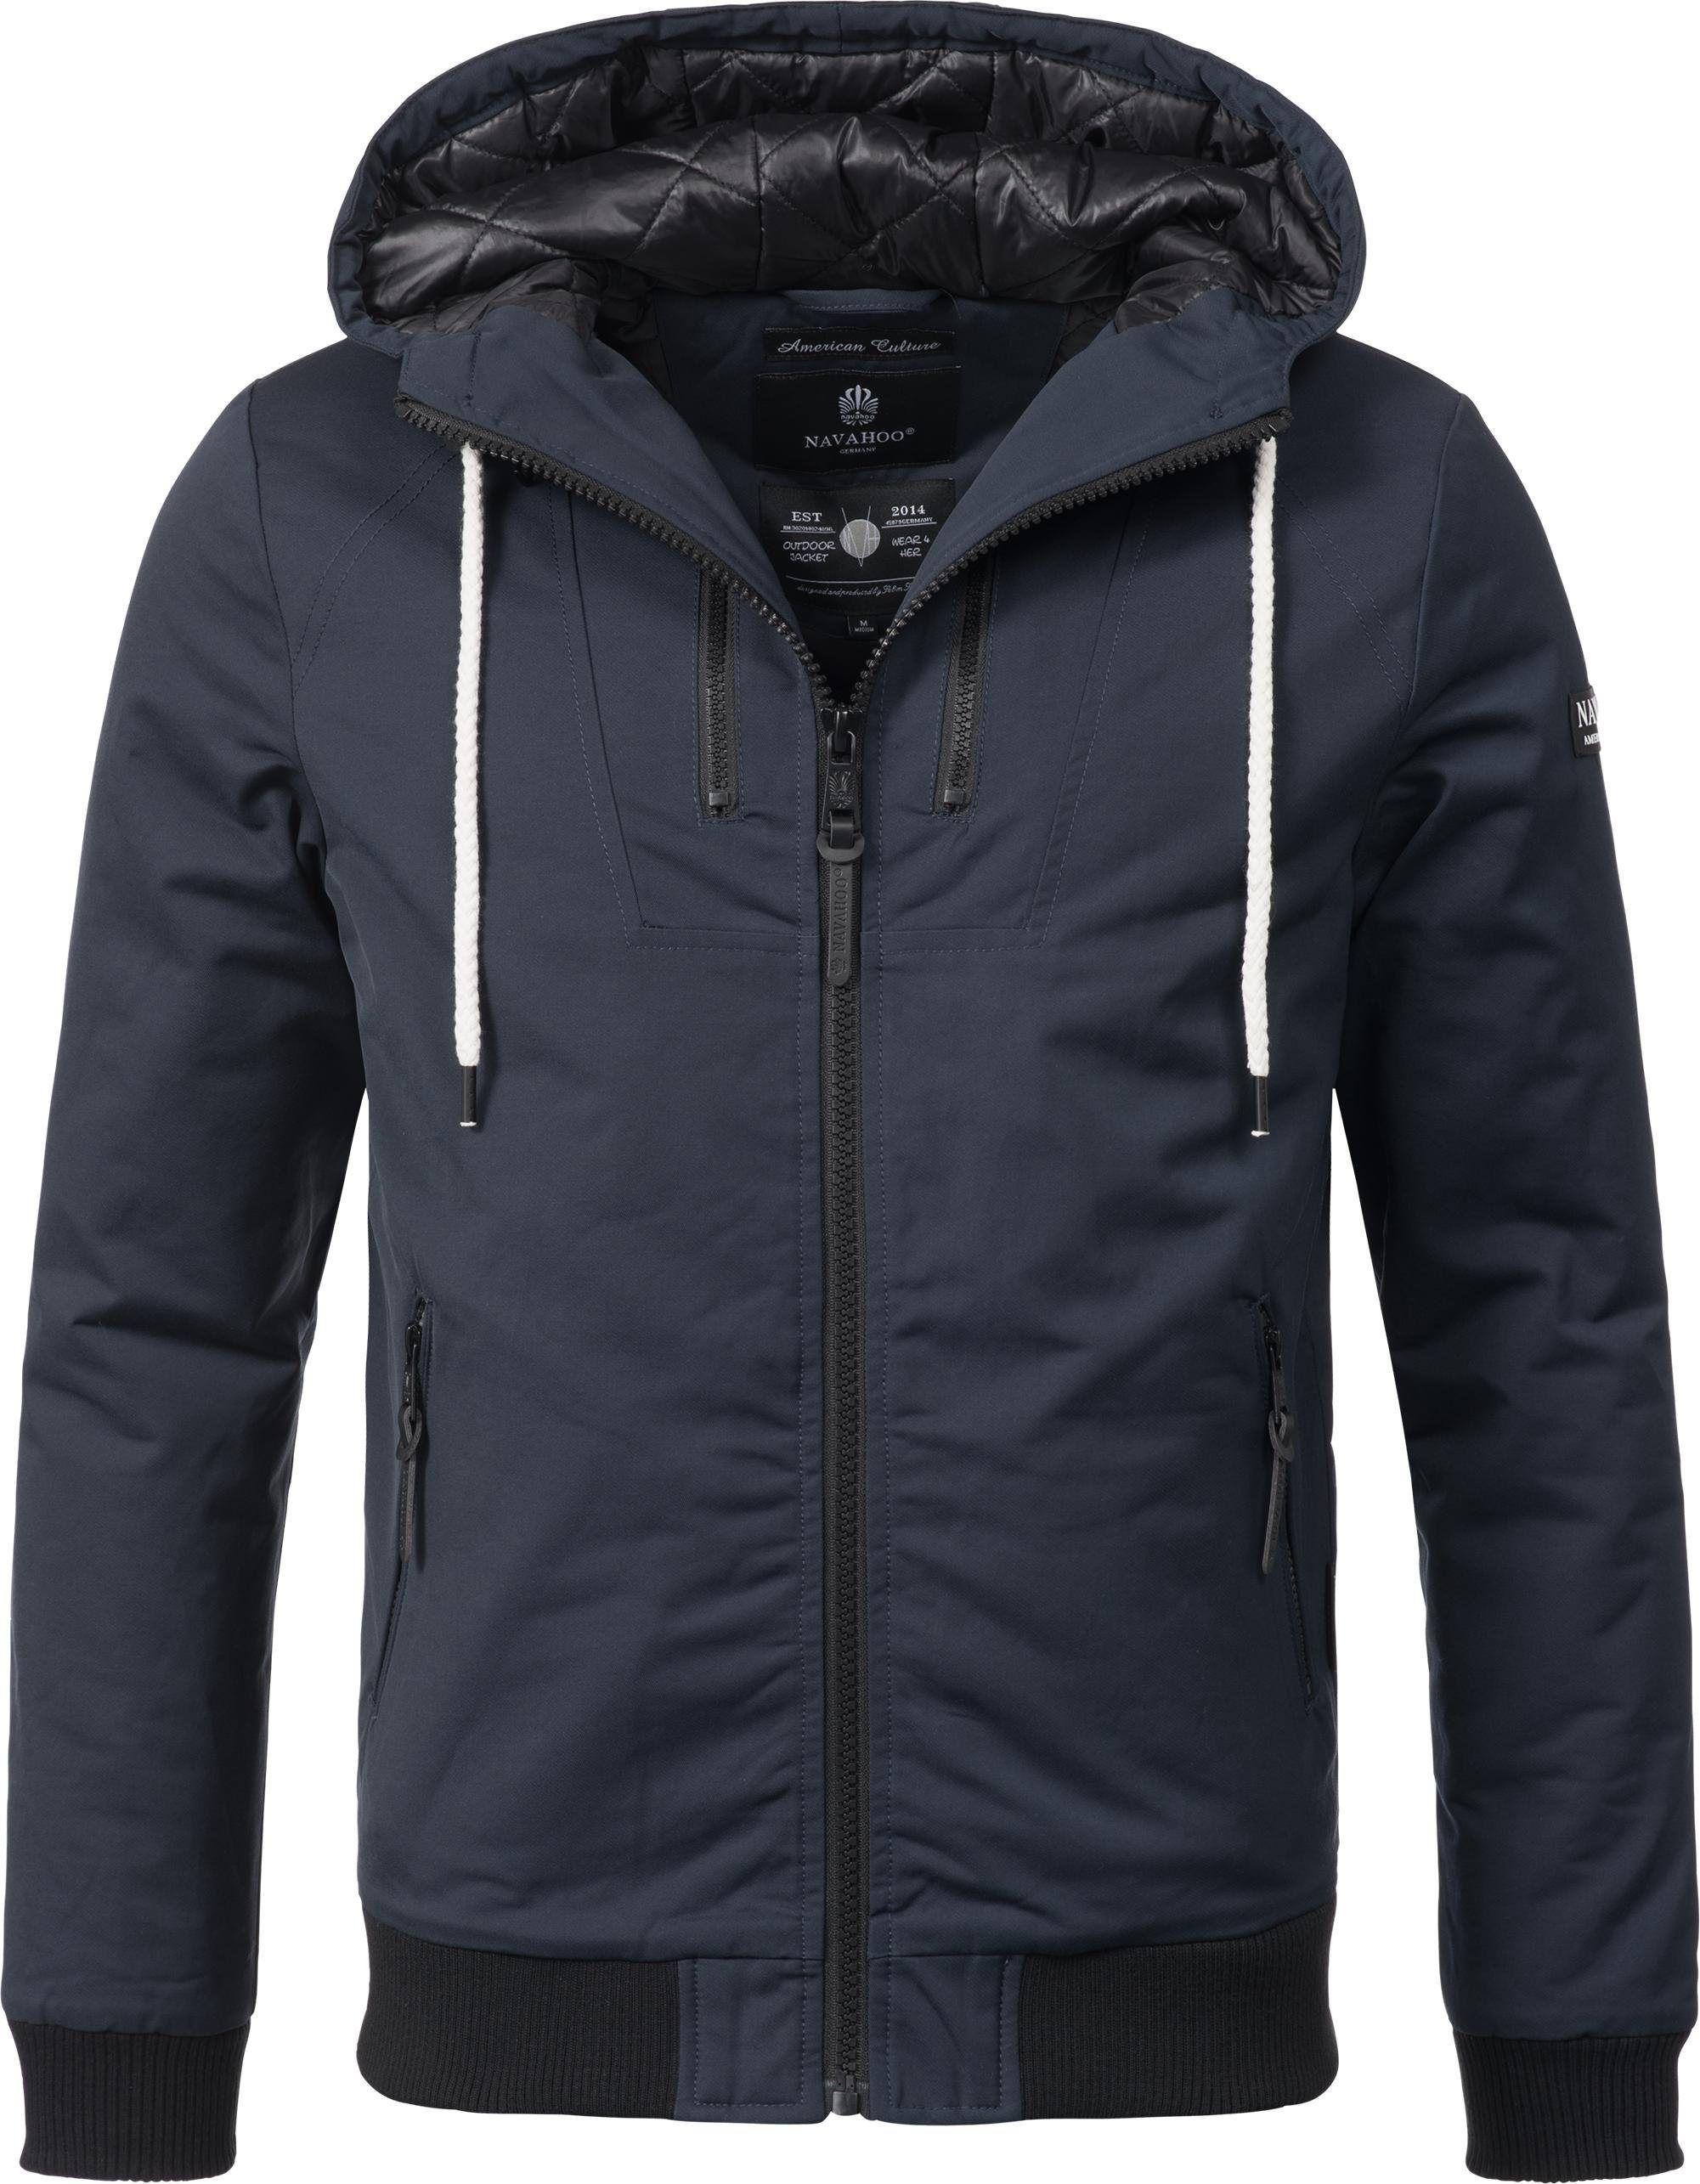 Navahoo Winterjacke »Hunter No 1« stylische Allroundjacke